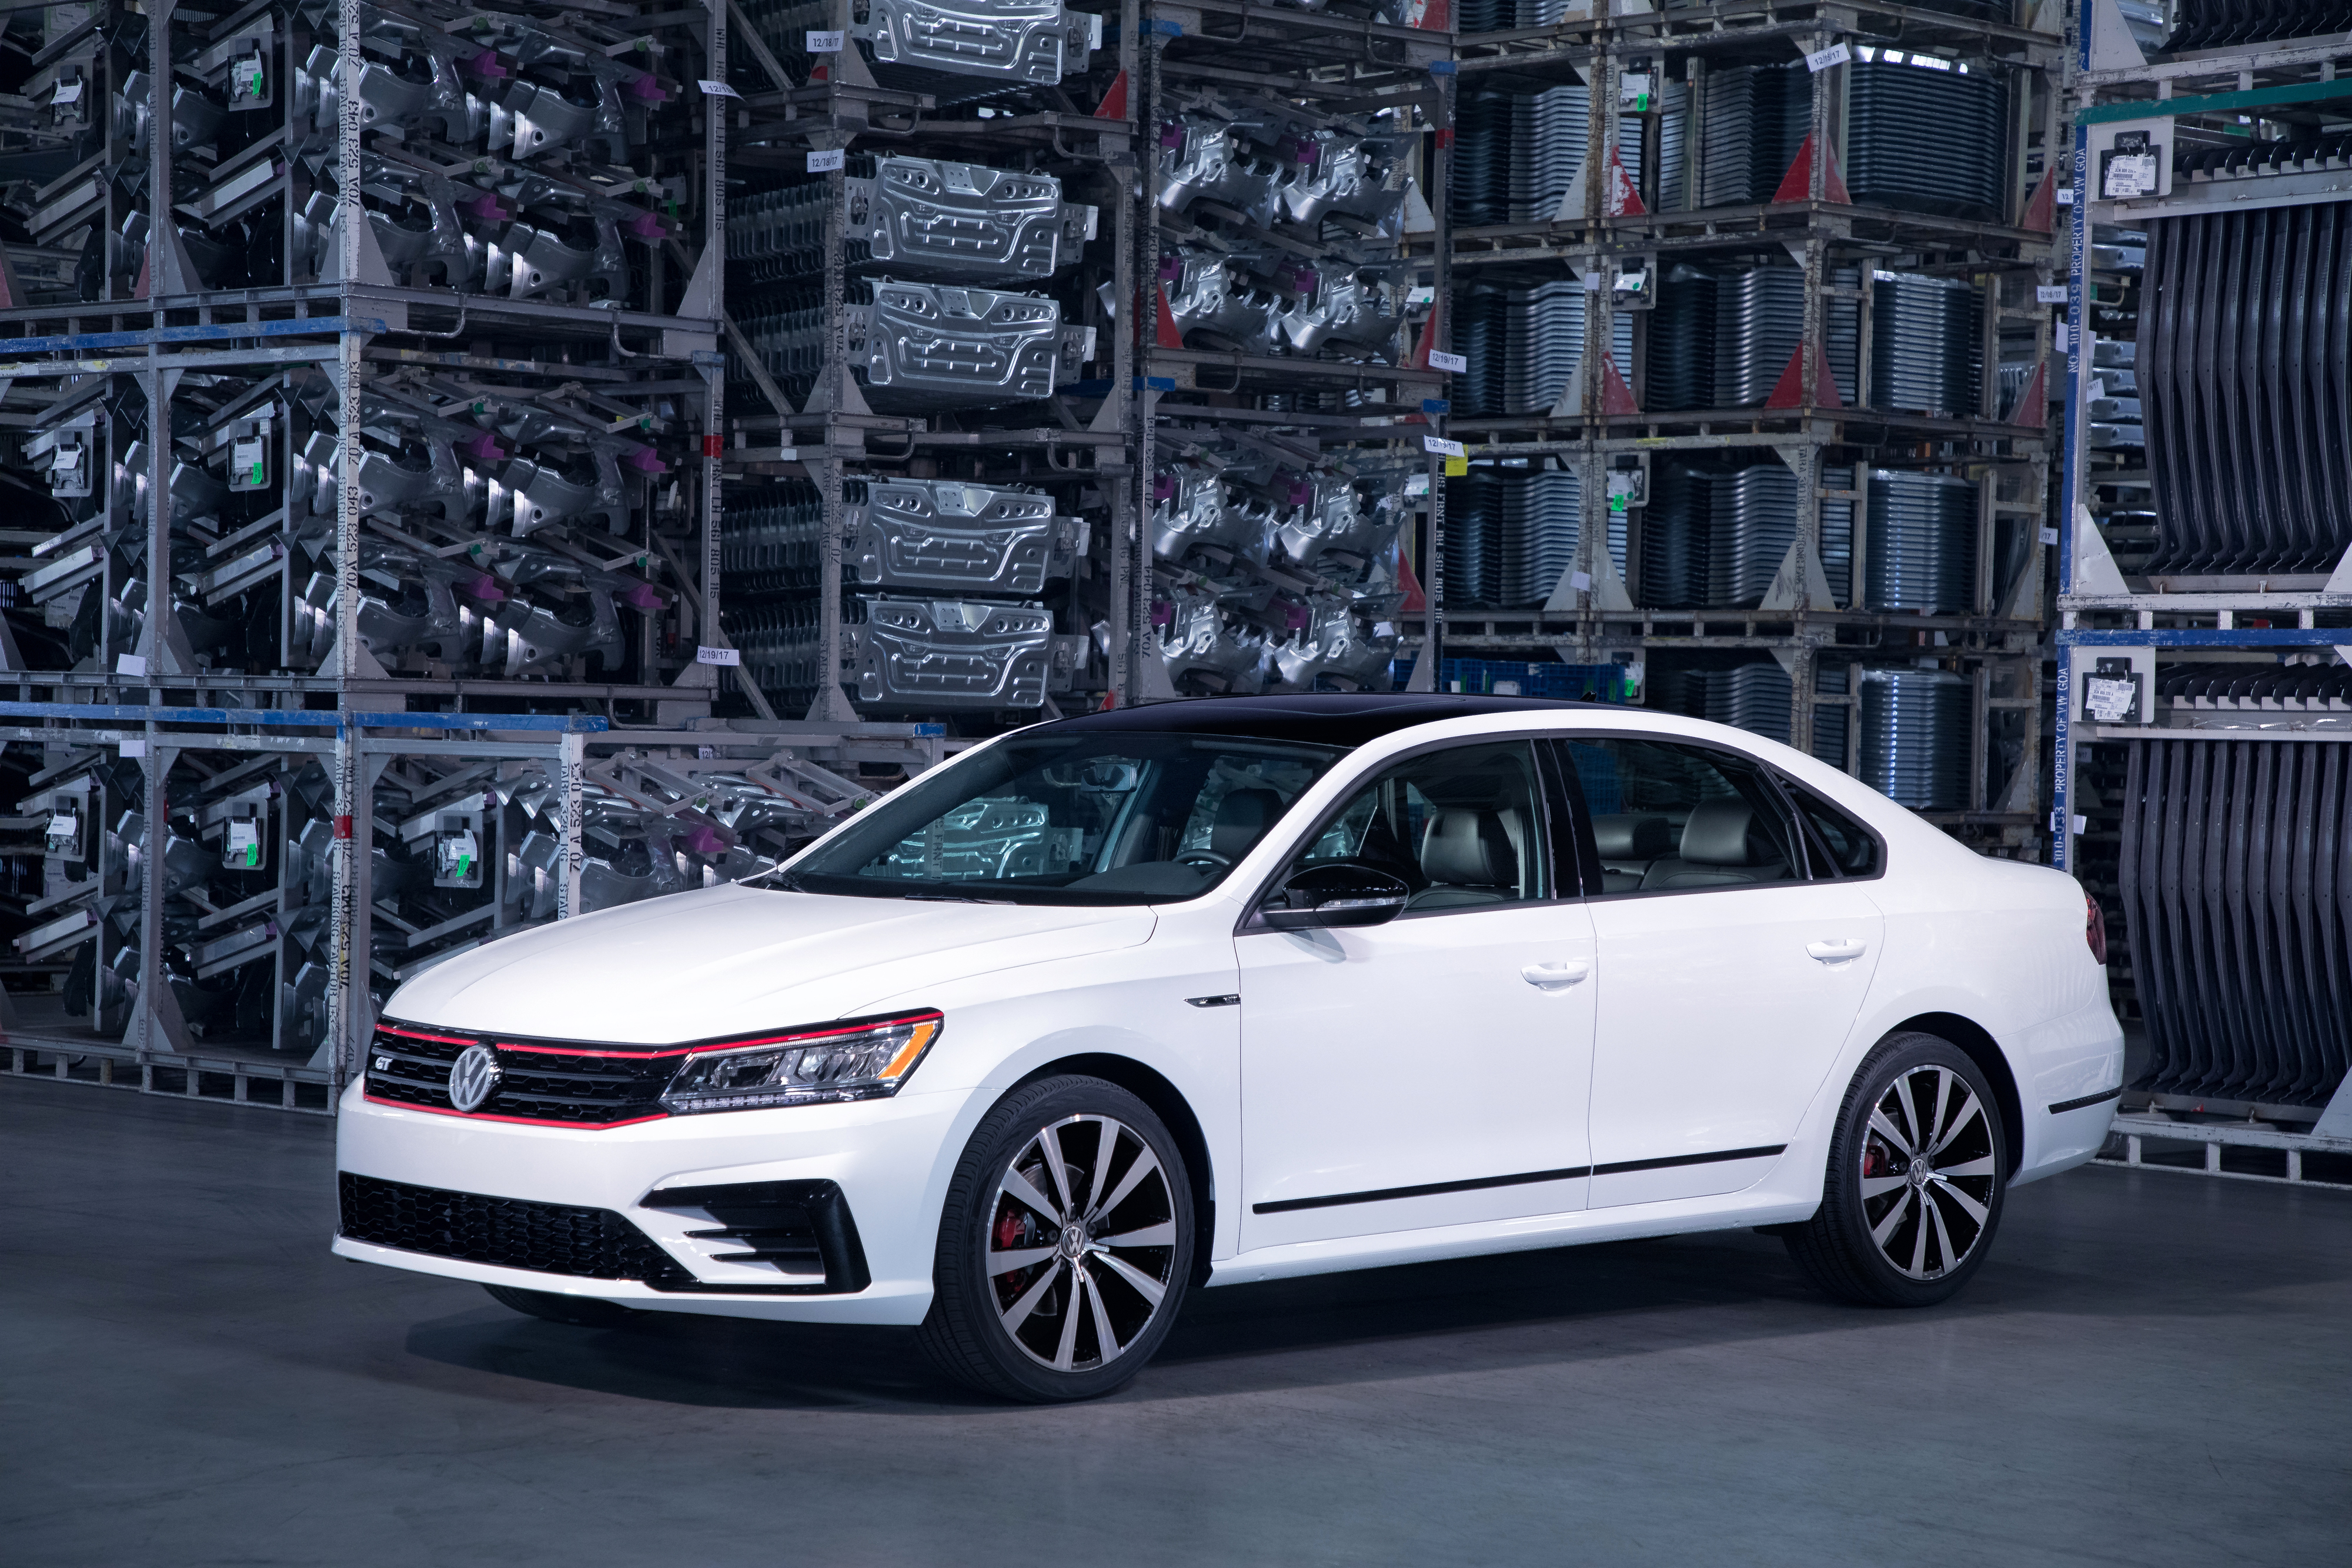 Fine Vr6 Power Volkswagen Unveils The Passat Gt The Truth About Cars Wiring Cloud Eachirenstrafr09Org